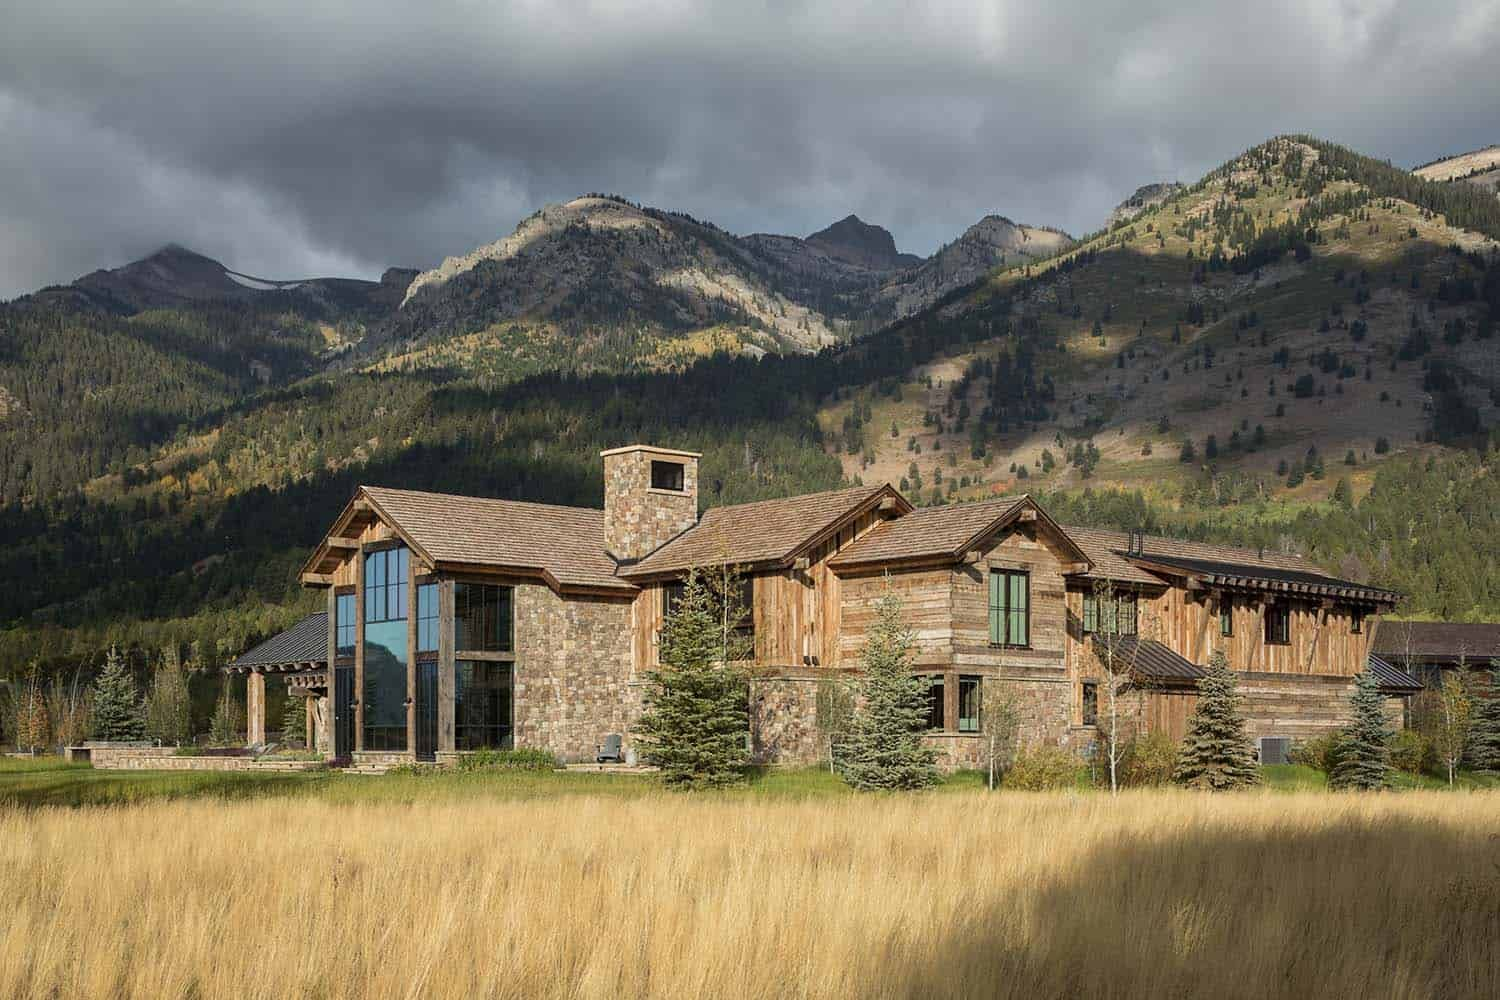 Delightful Rustic Home In Wyoming With A Dramatic Mountain Backdrop Rustic House Rustic Houses Exterior Mountain Home Exterior